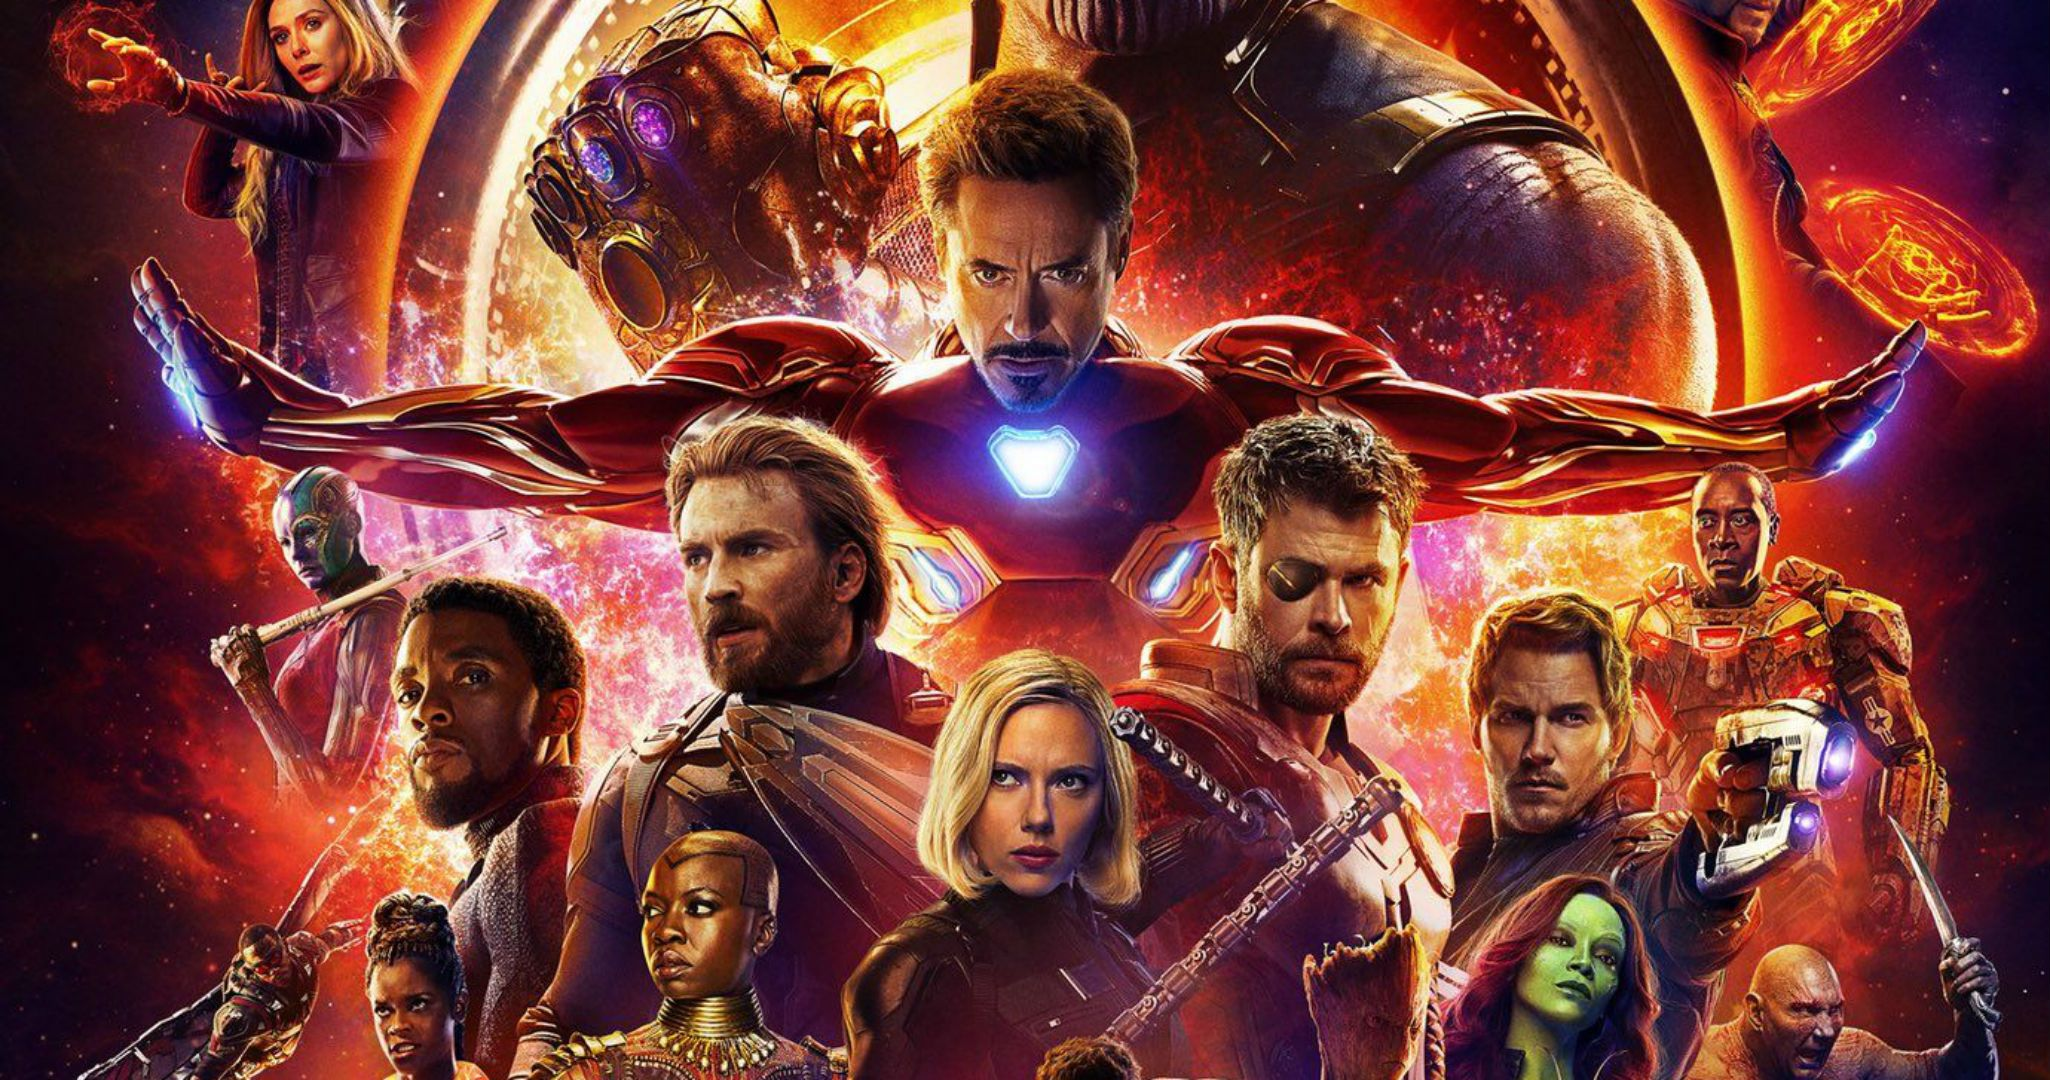 Marvel boss Kevin Feige reveals which three Disney+ superheroes will cross over to movies